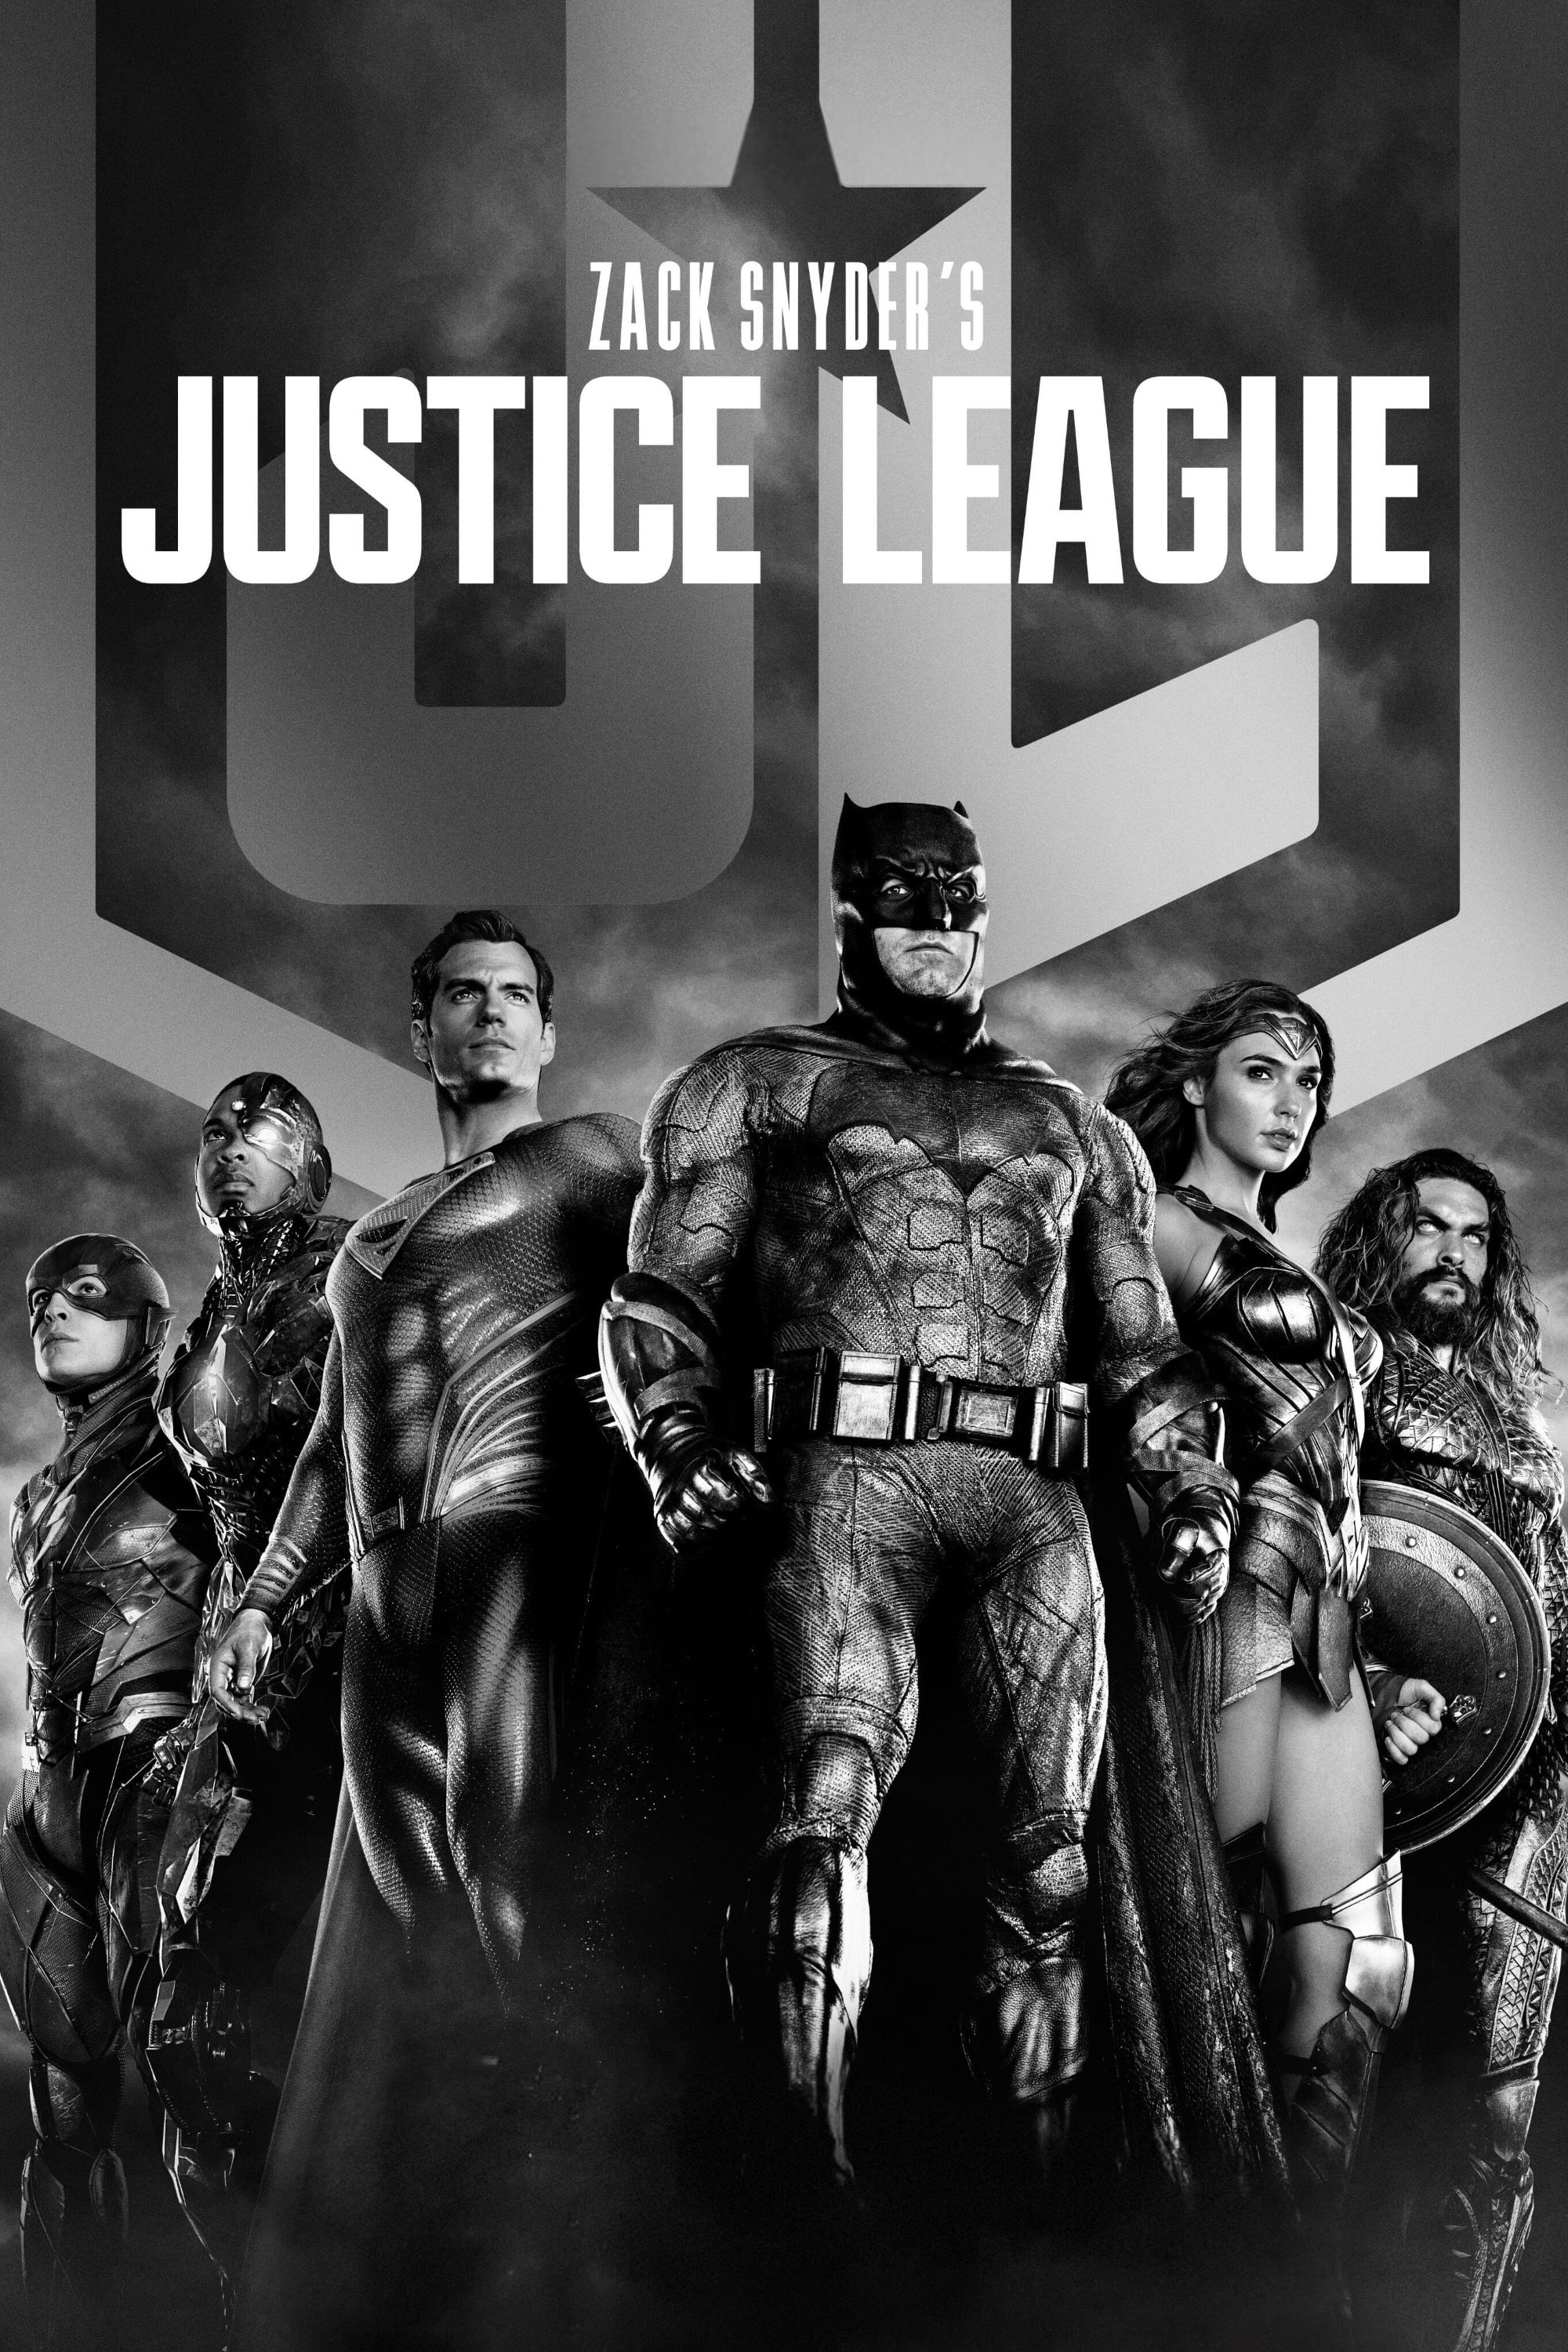 Poster; Zack Snyder's Justice League